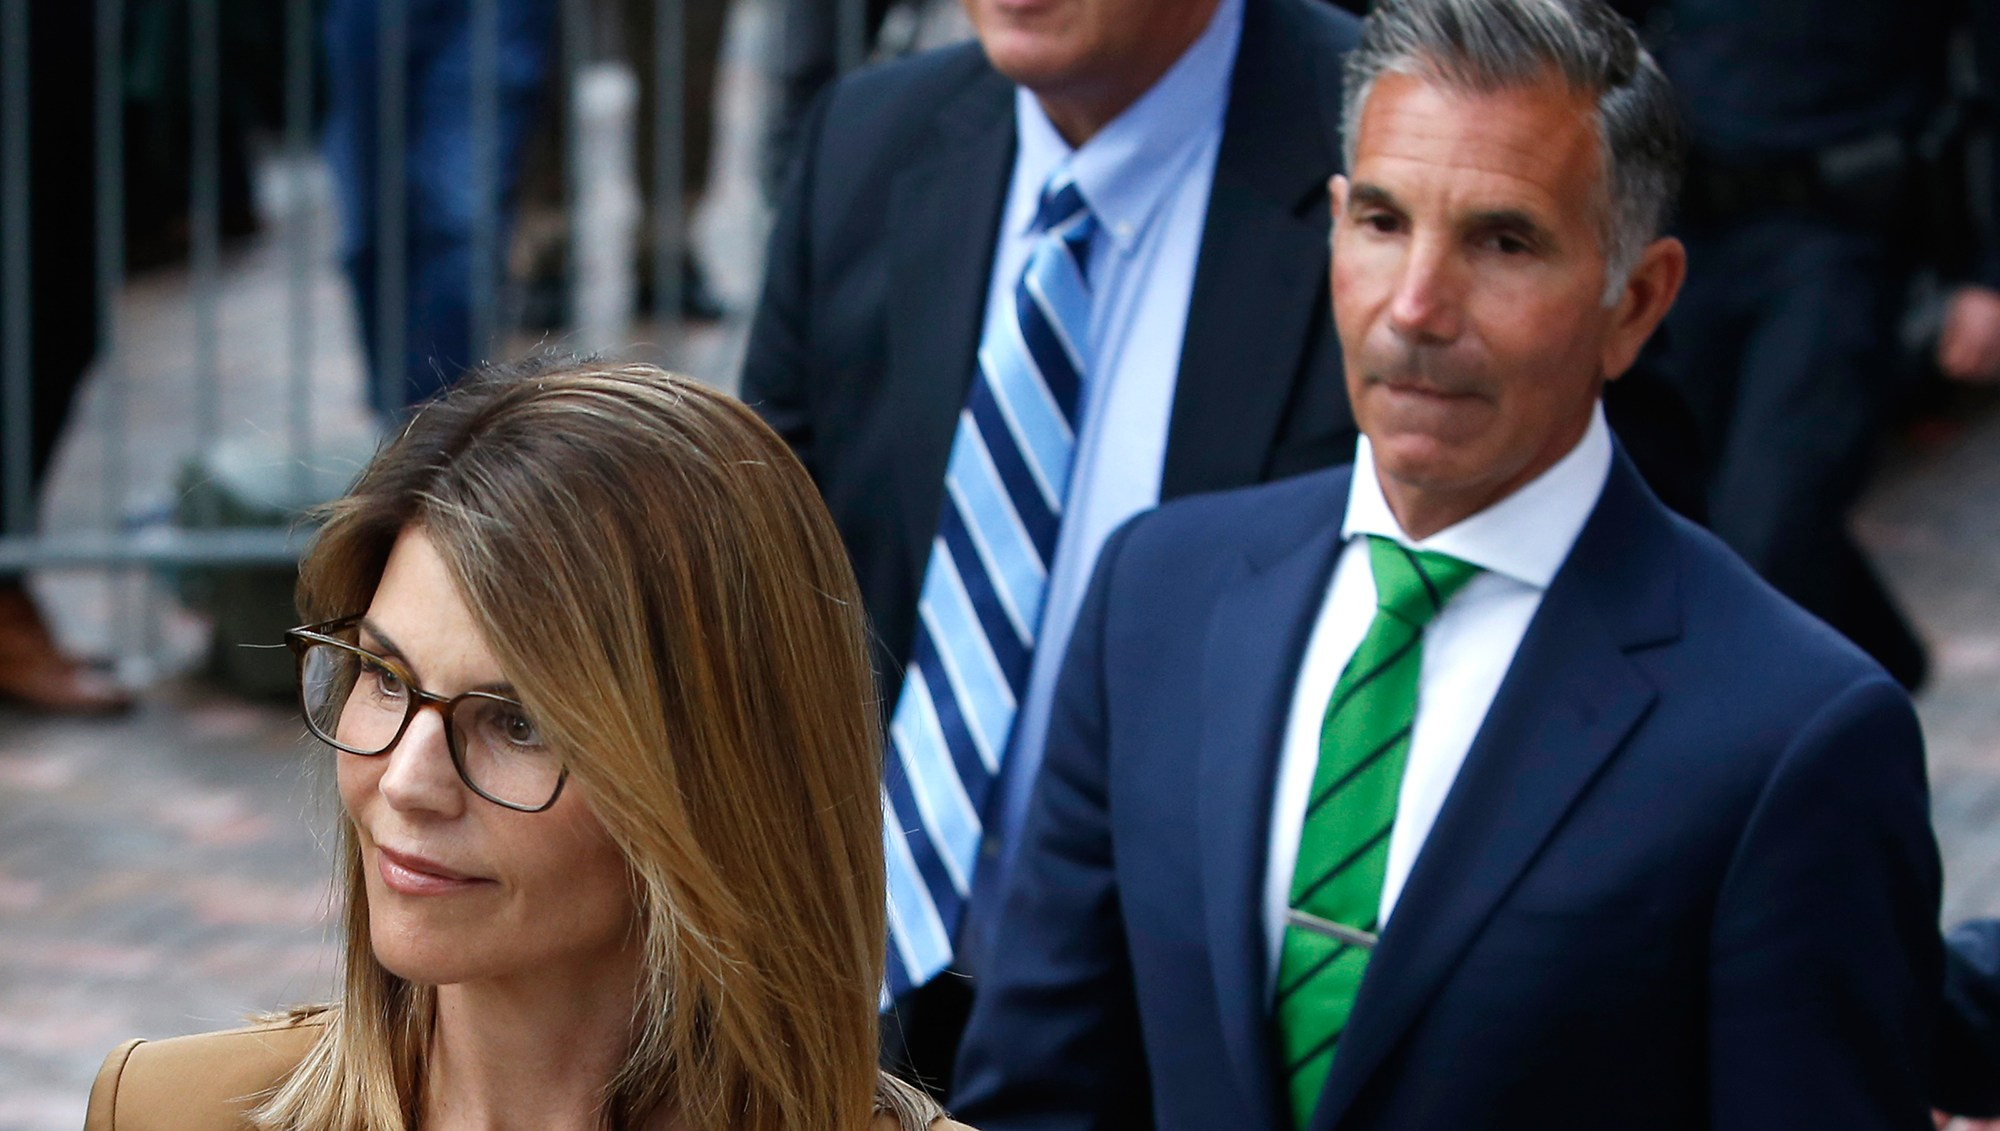 Lori Loughlin and Mossimo Giannulli Says They Did Nothing Wrong